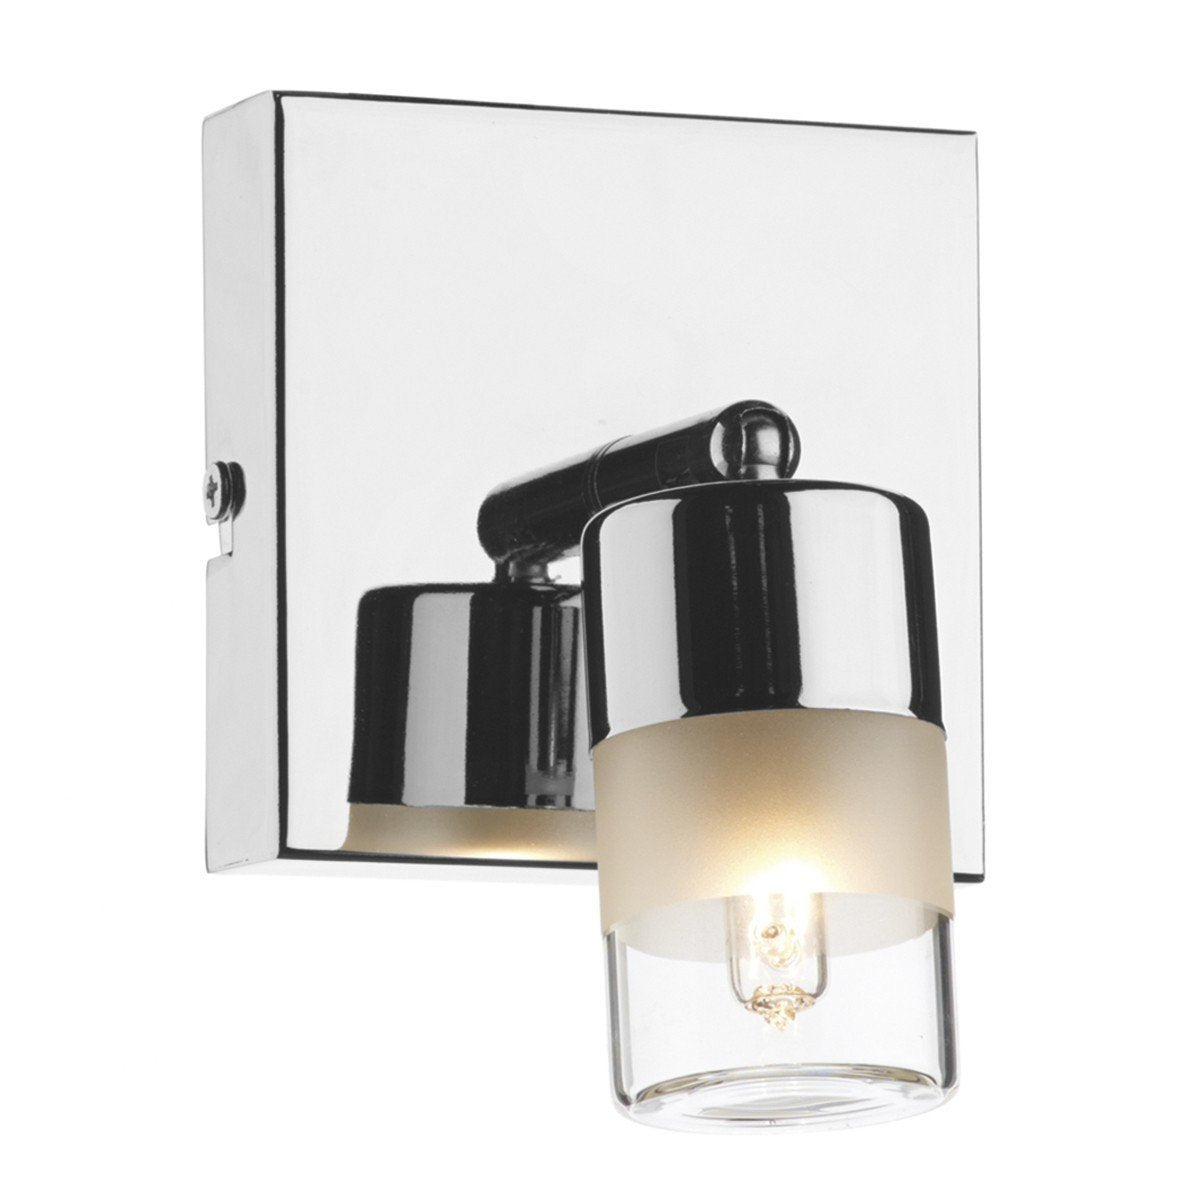 Artemis Polished Chrome 1 Light Wall Light - London Lighting - 1